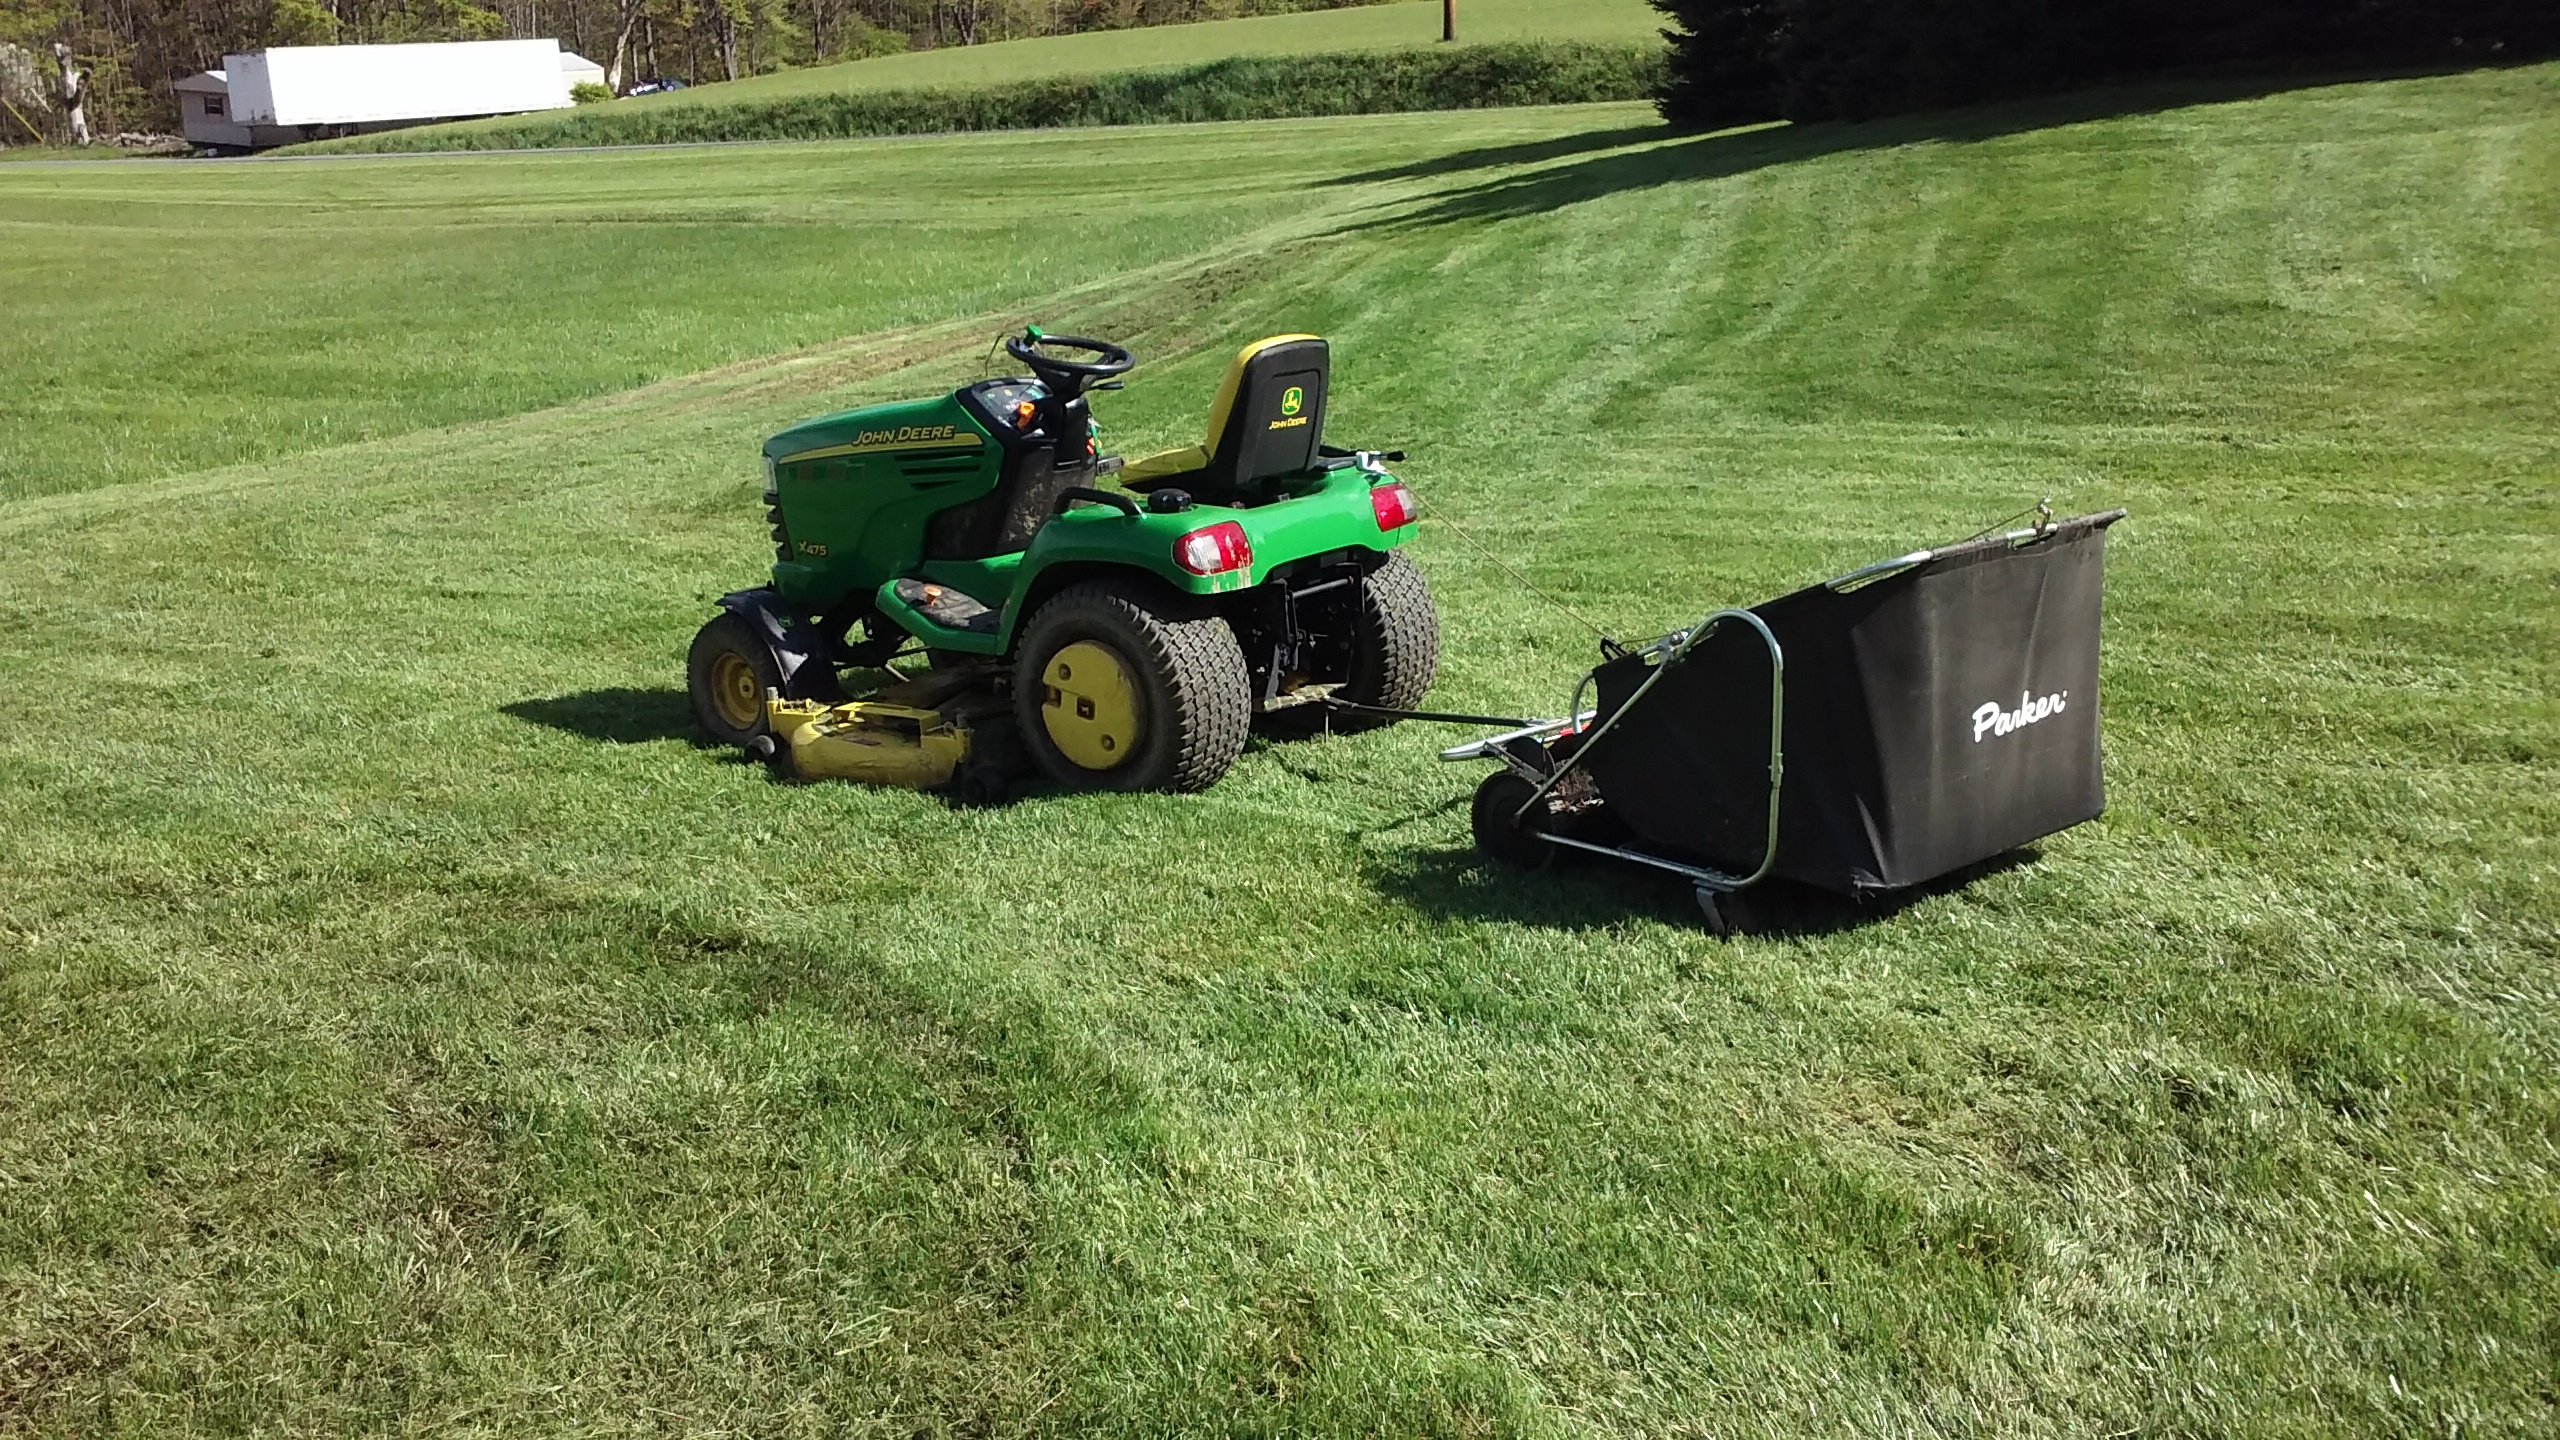 Click image for larger version.  Name:sweeping grass with the X475 and parker sweeper20170509_162104.jpg Views:28 Size:2.06 MB ID:364138